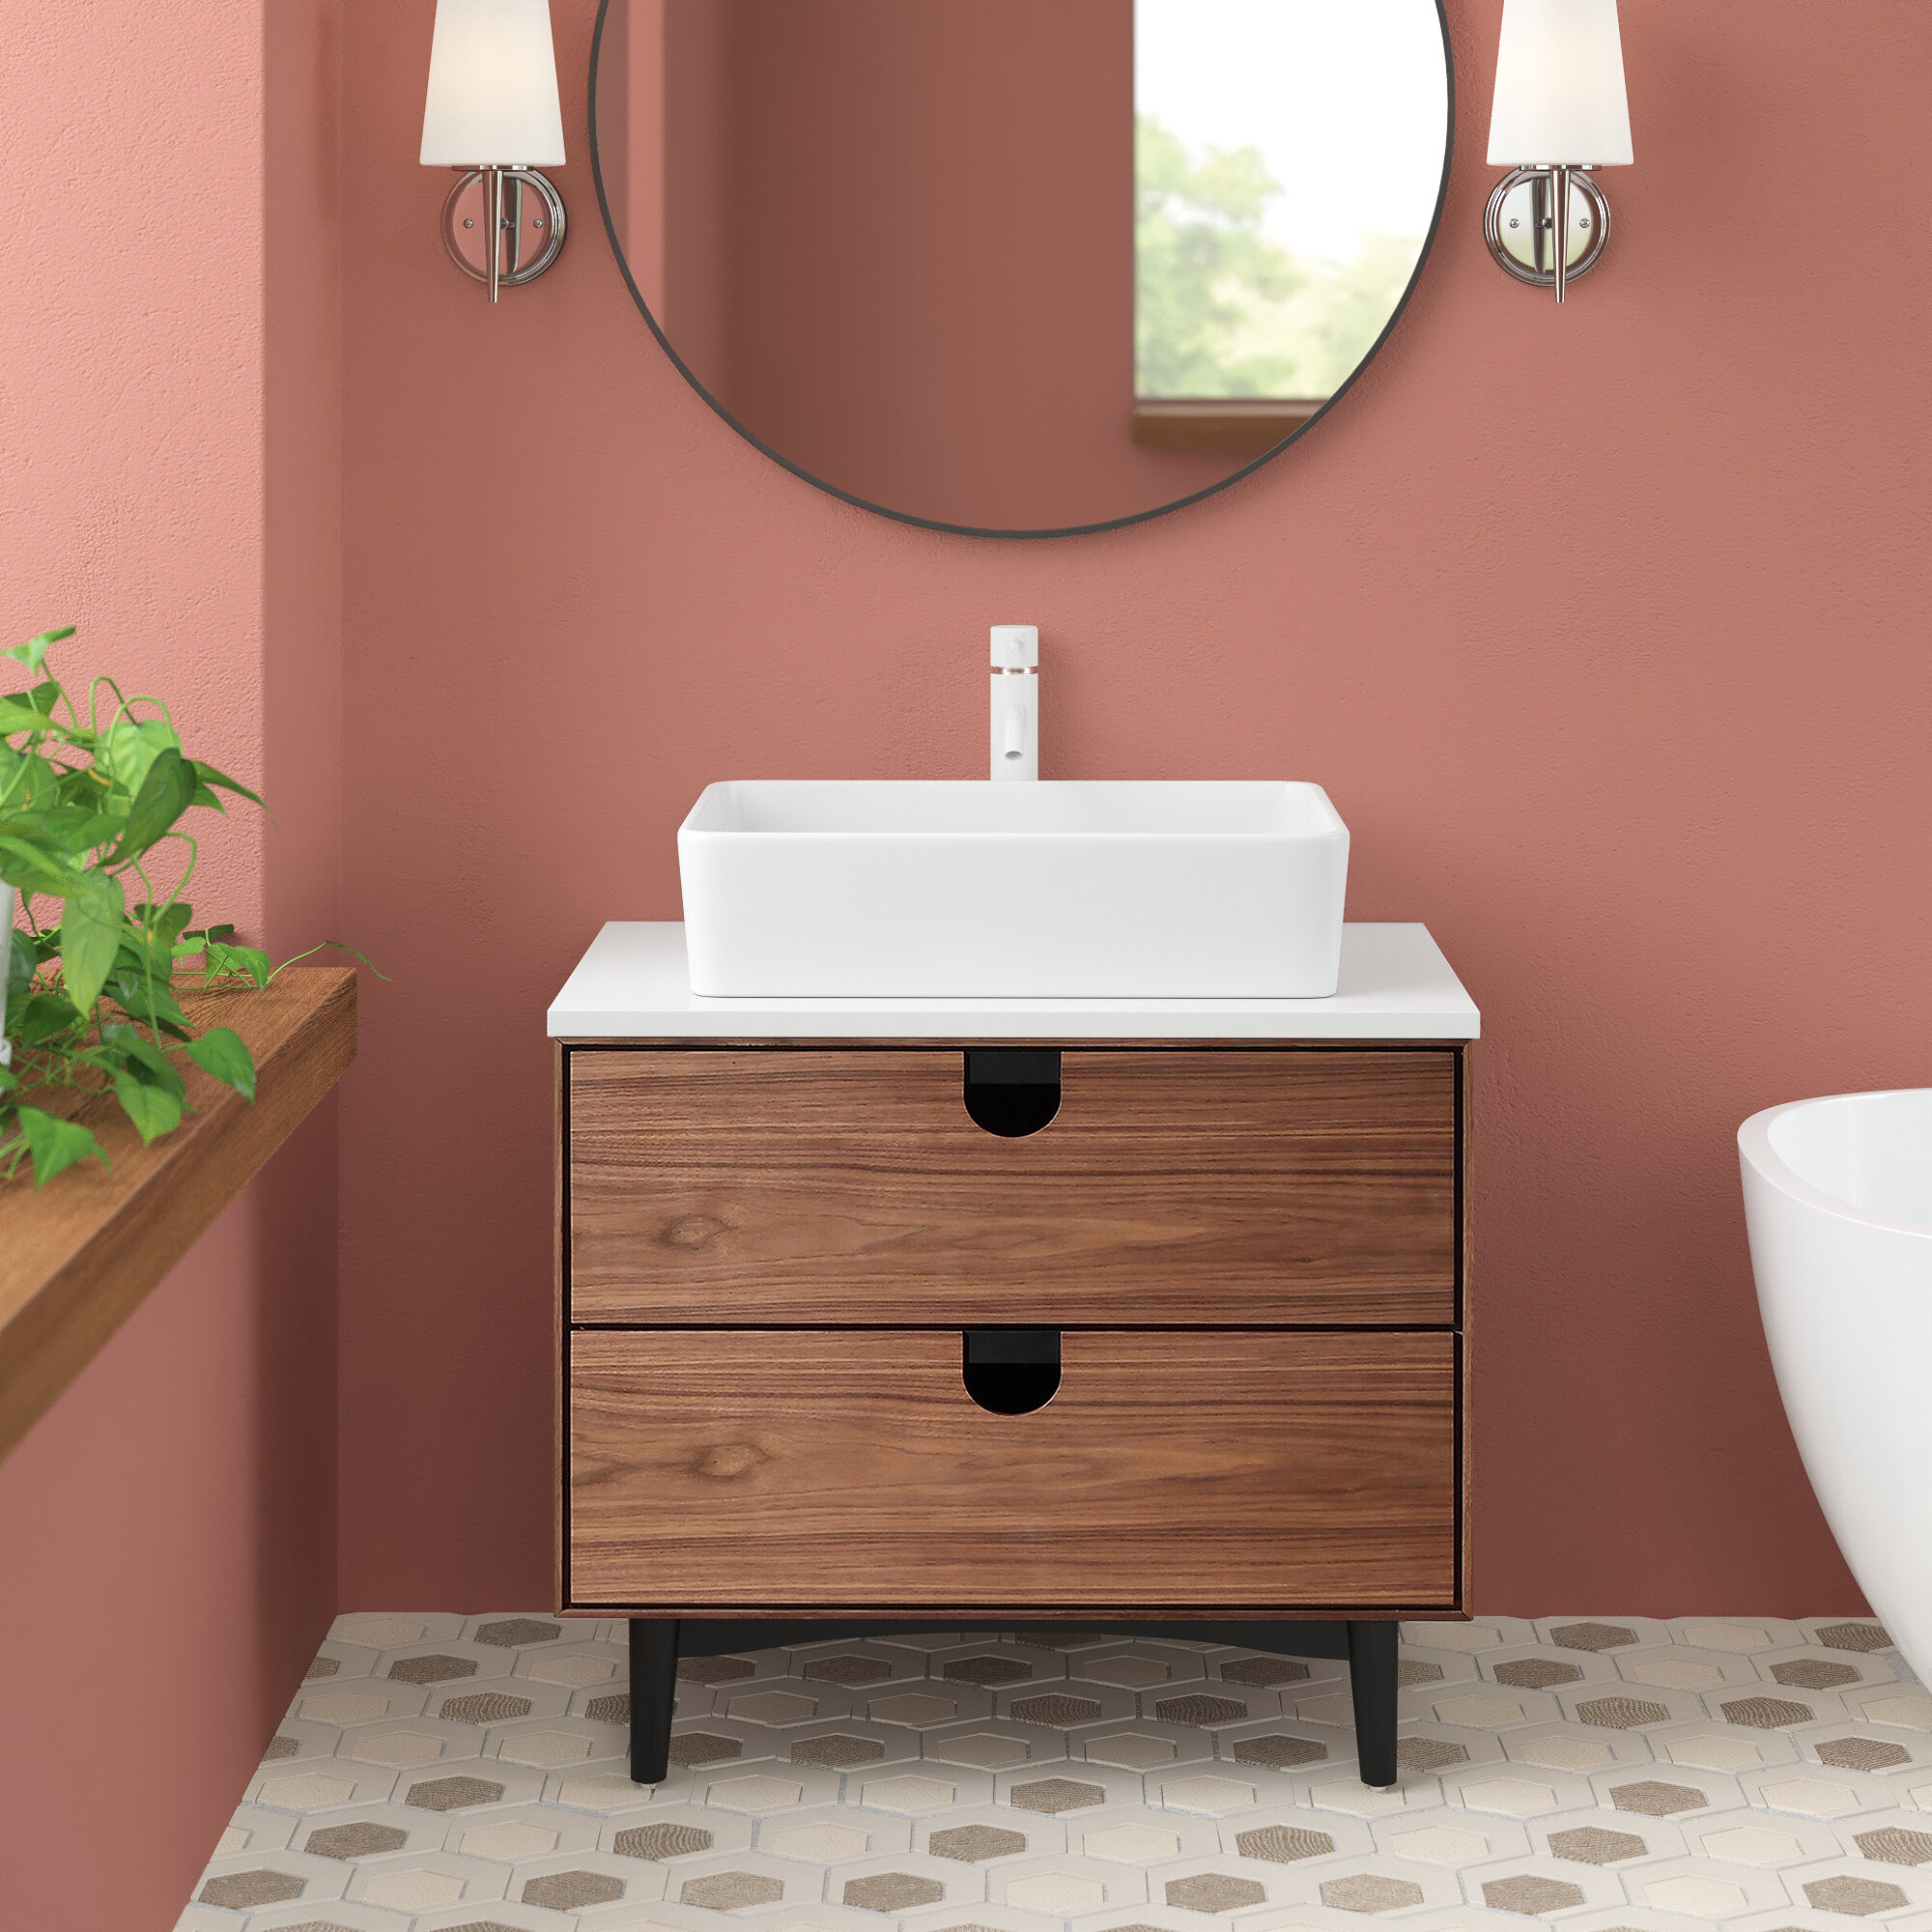 Kartonrepublic Portree 30 Single Bathroom Vanity Reviews Wayfair